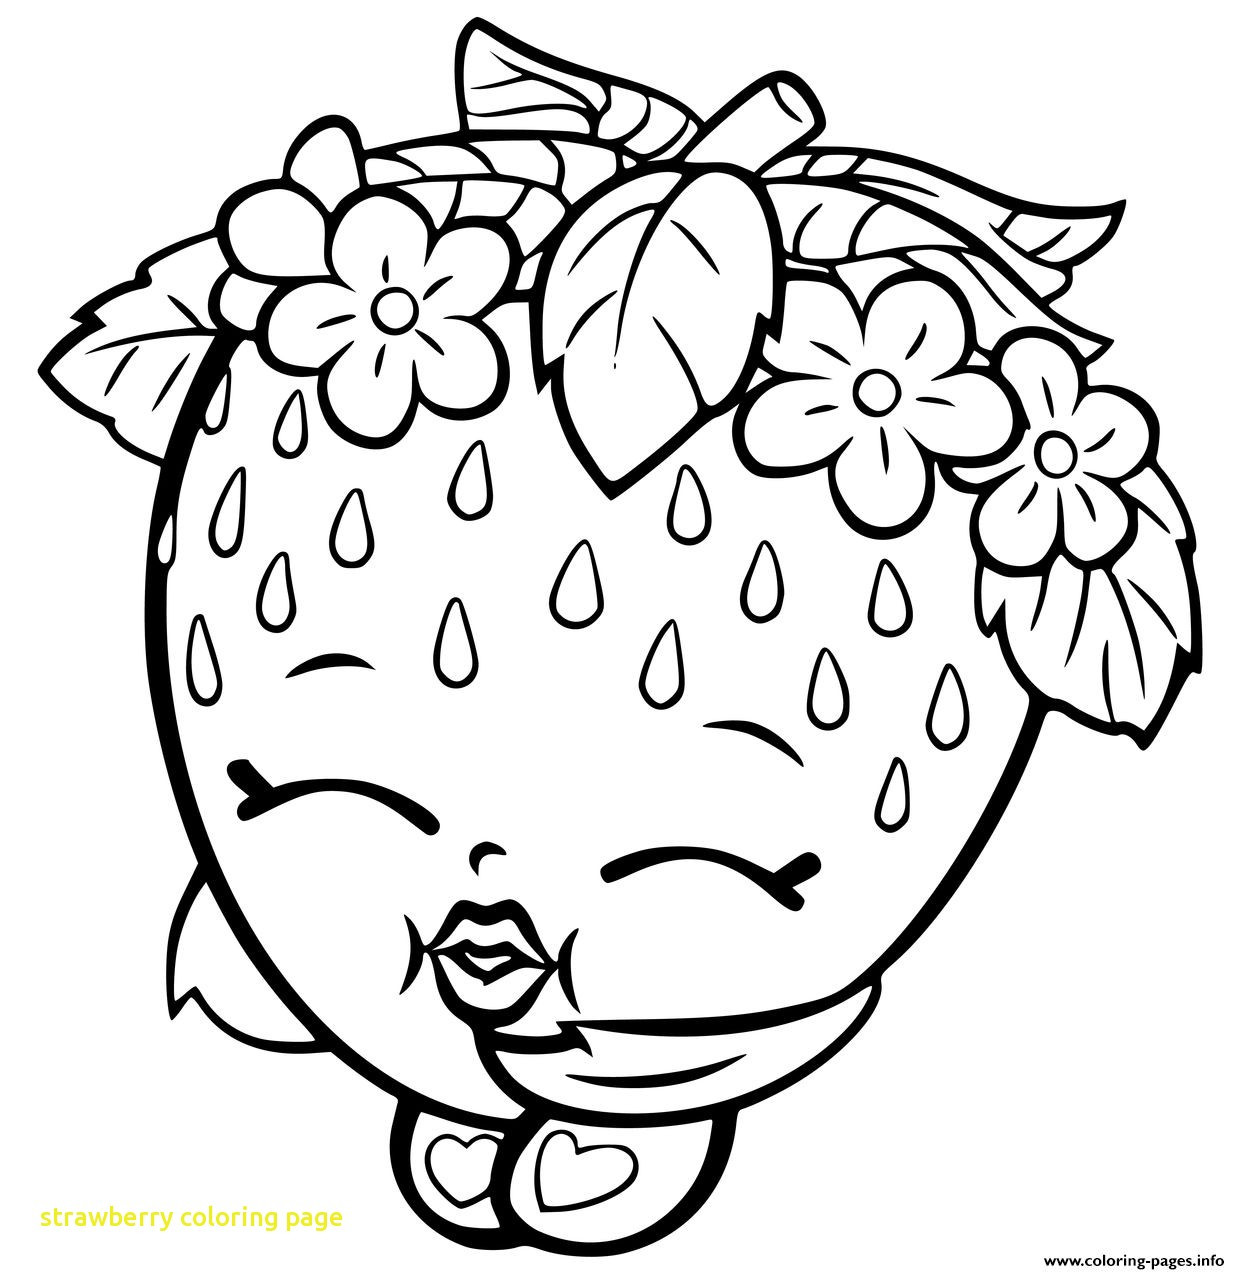 1240x1274 Strawberry Coloring Pages Free For Alluring Colouring Page